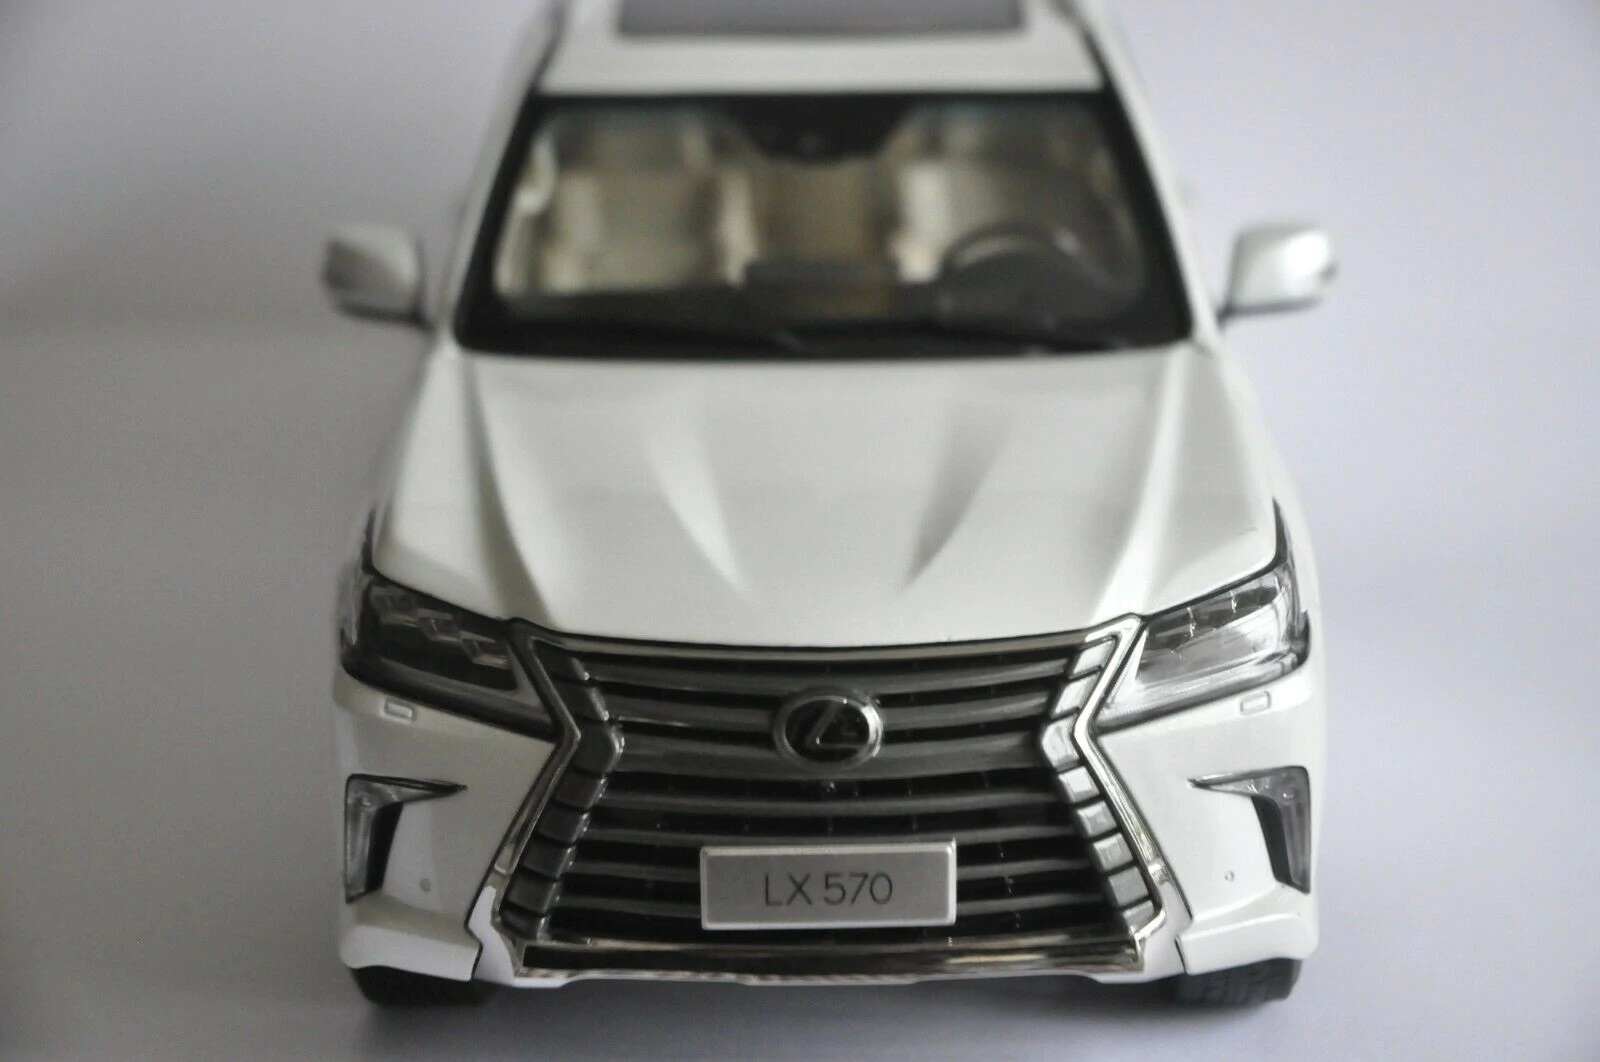 1:18 Diecast Model for Lexus LX570 2019 Whtie SUV Alloy Toy Car Miniature Collection Gifts Hot Selling LX 570